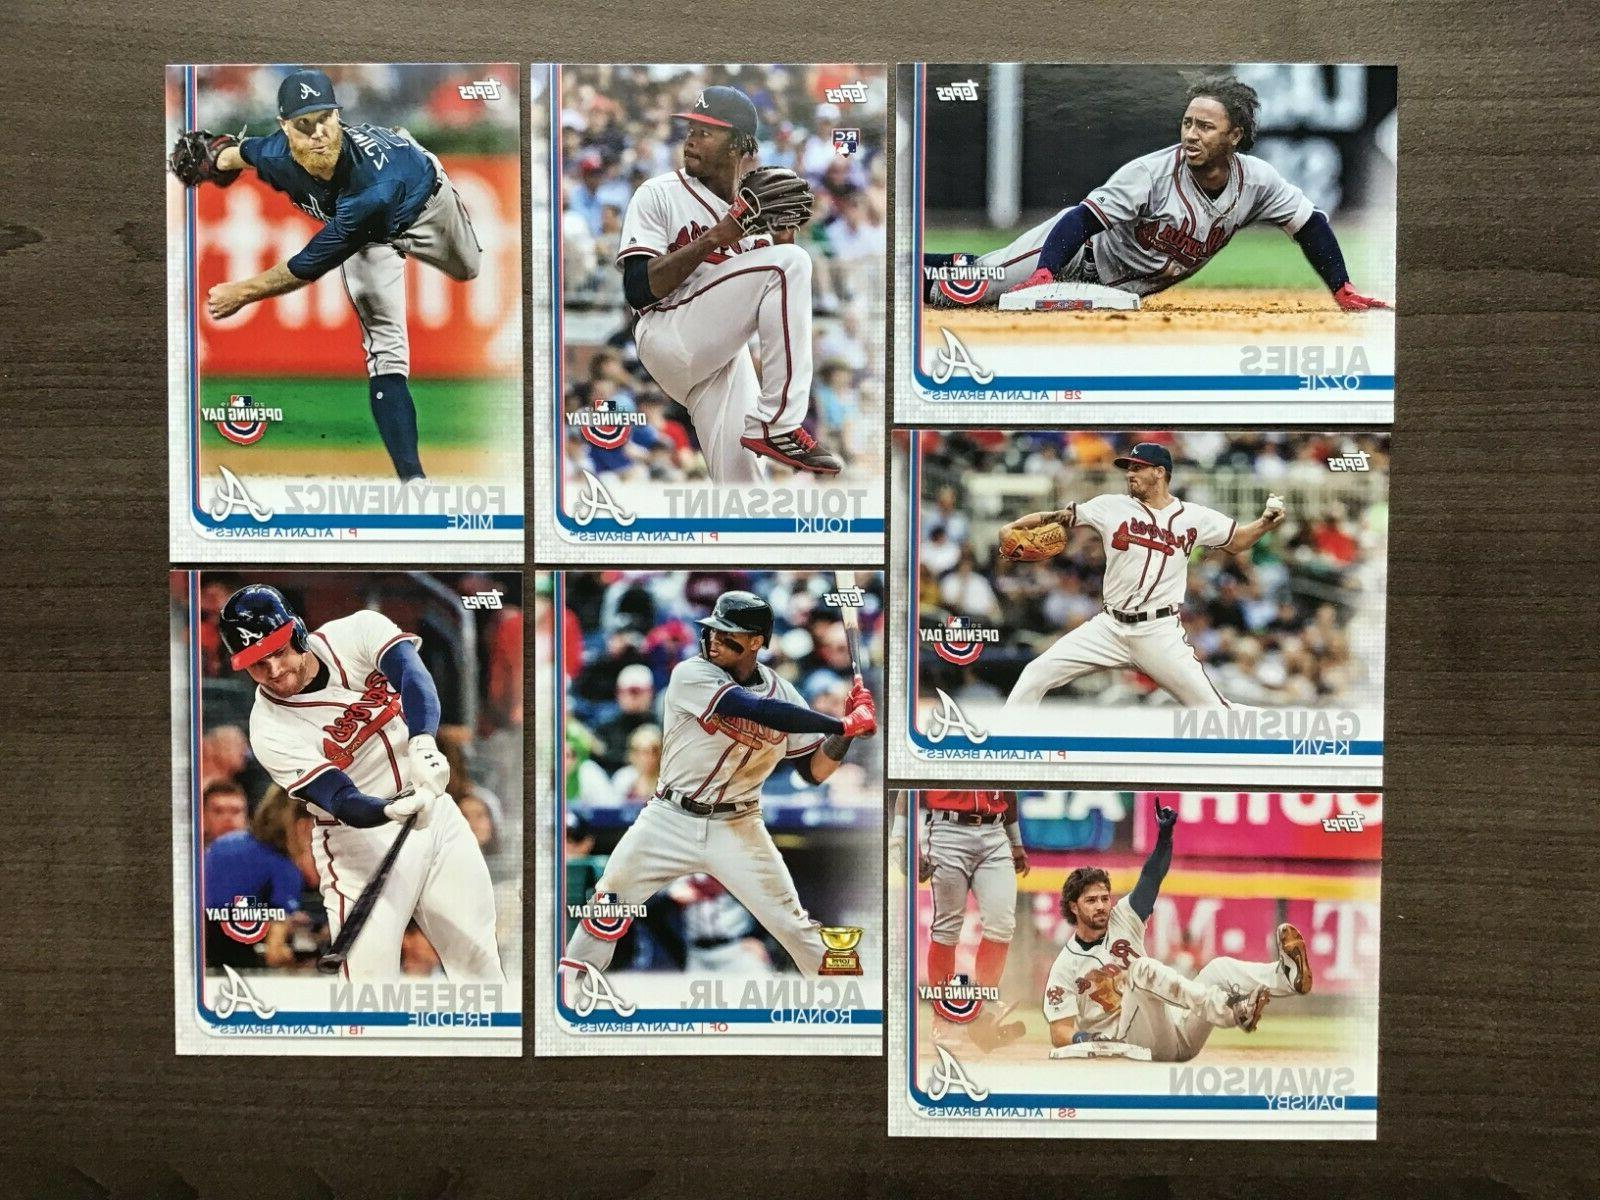 2019 topps opening day base team sets